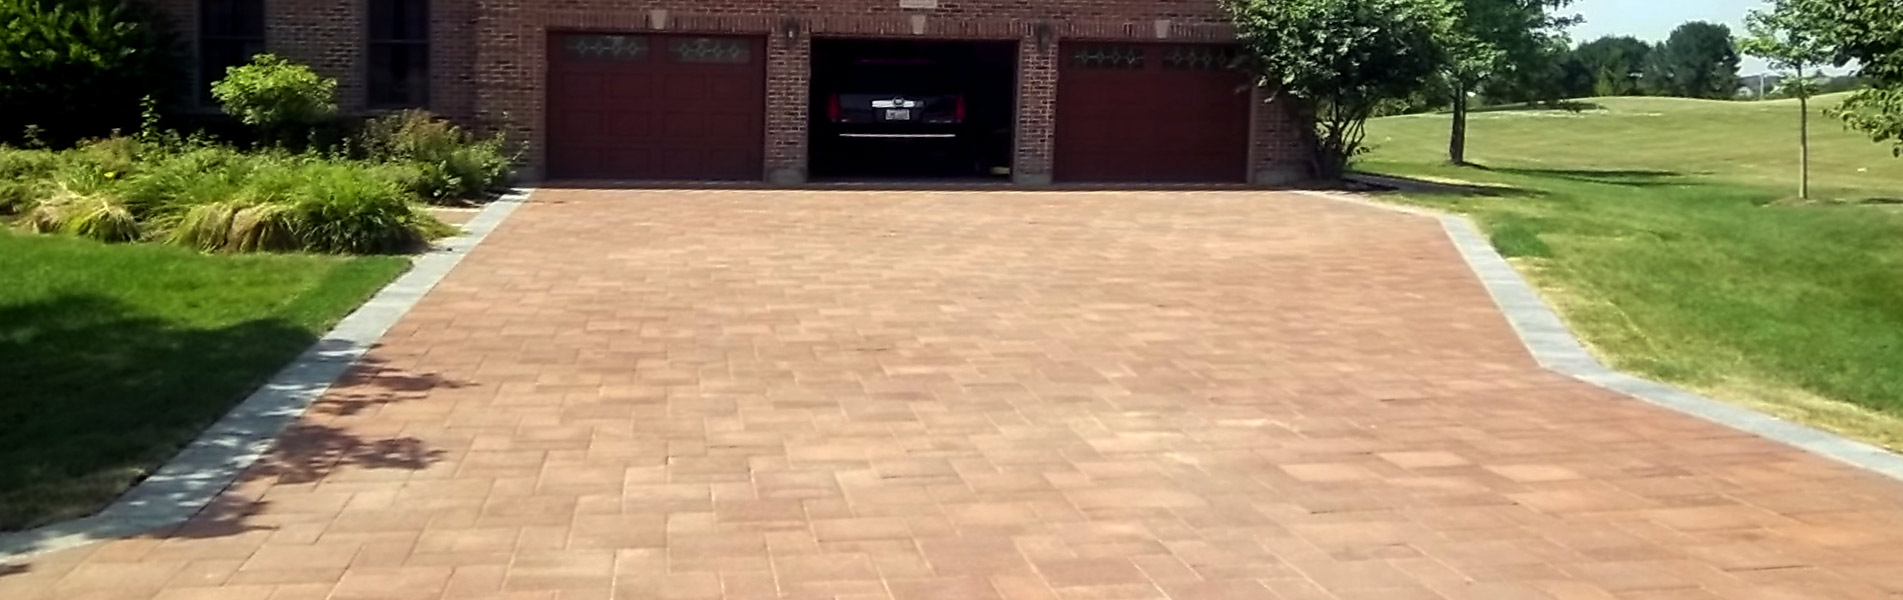 Driveway Installation Services by B&C Pavers and Landscaping Inc.